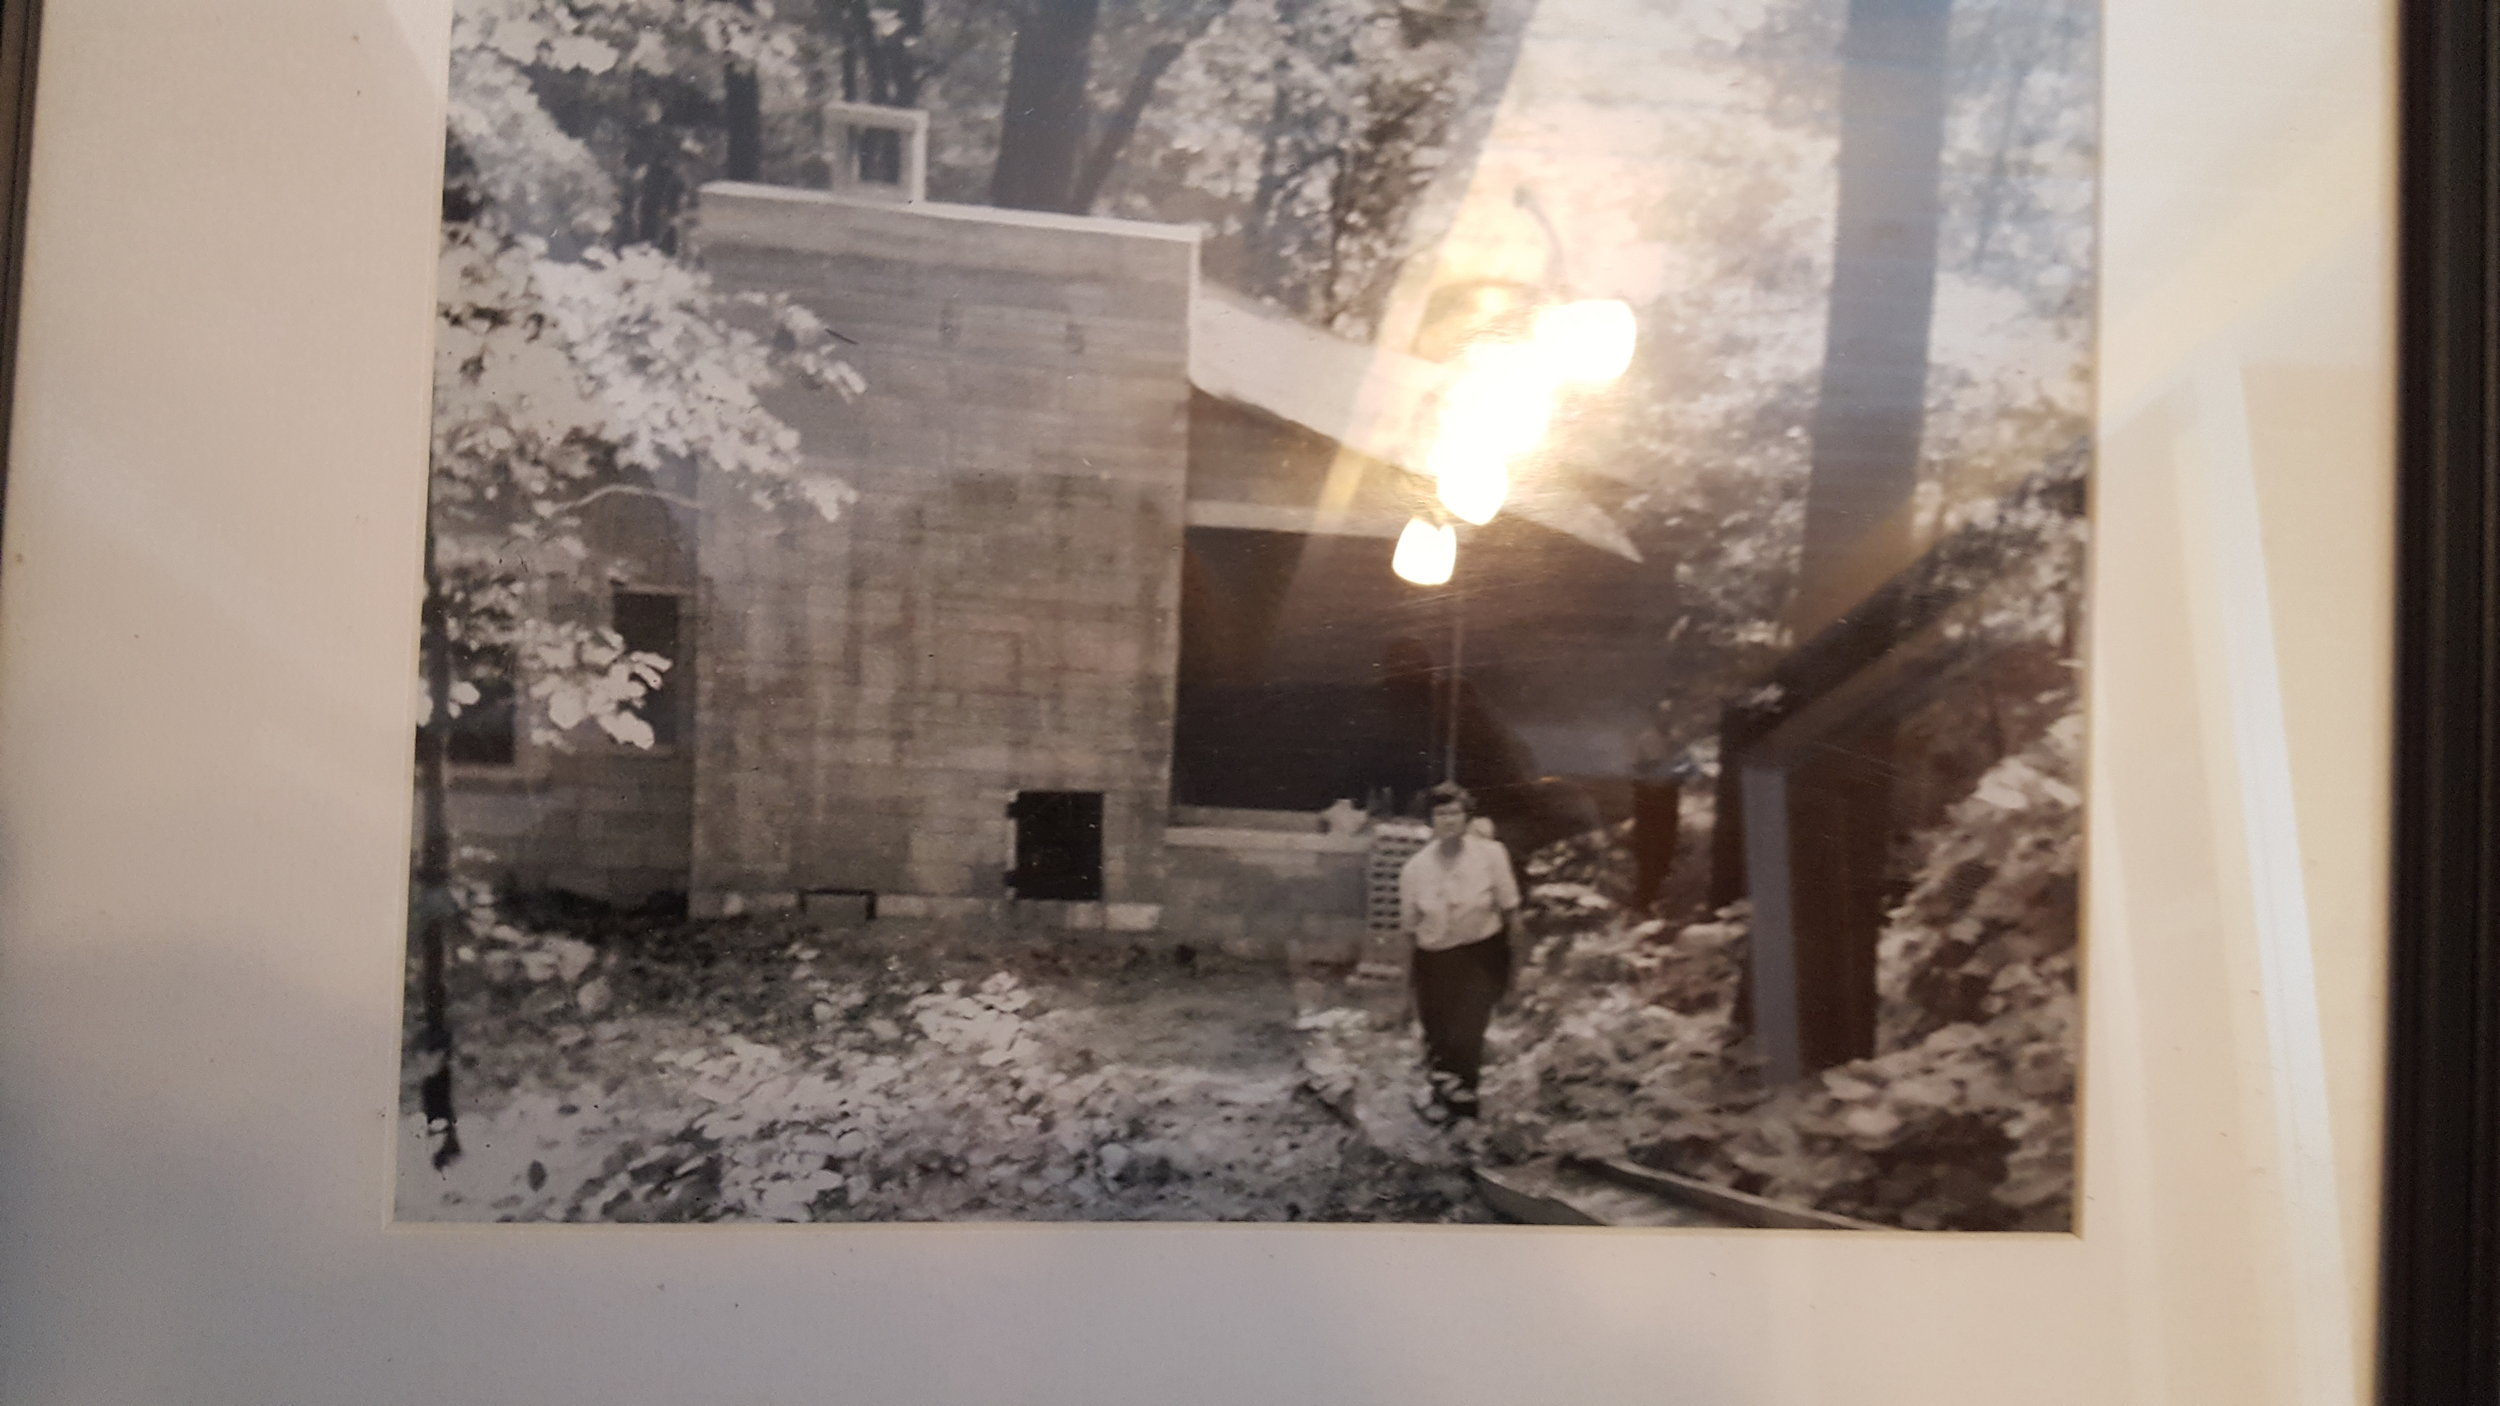 - My grandmother Alice Pustek in front of the cottage they built in Beverley Shores, IN.